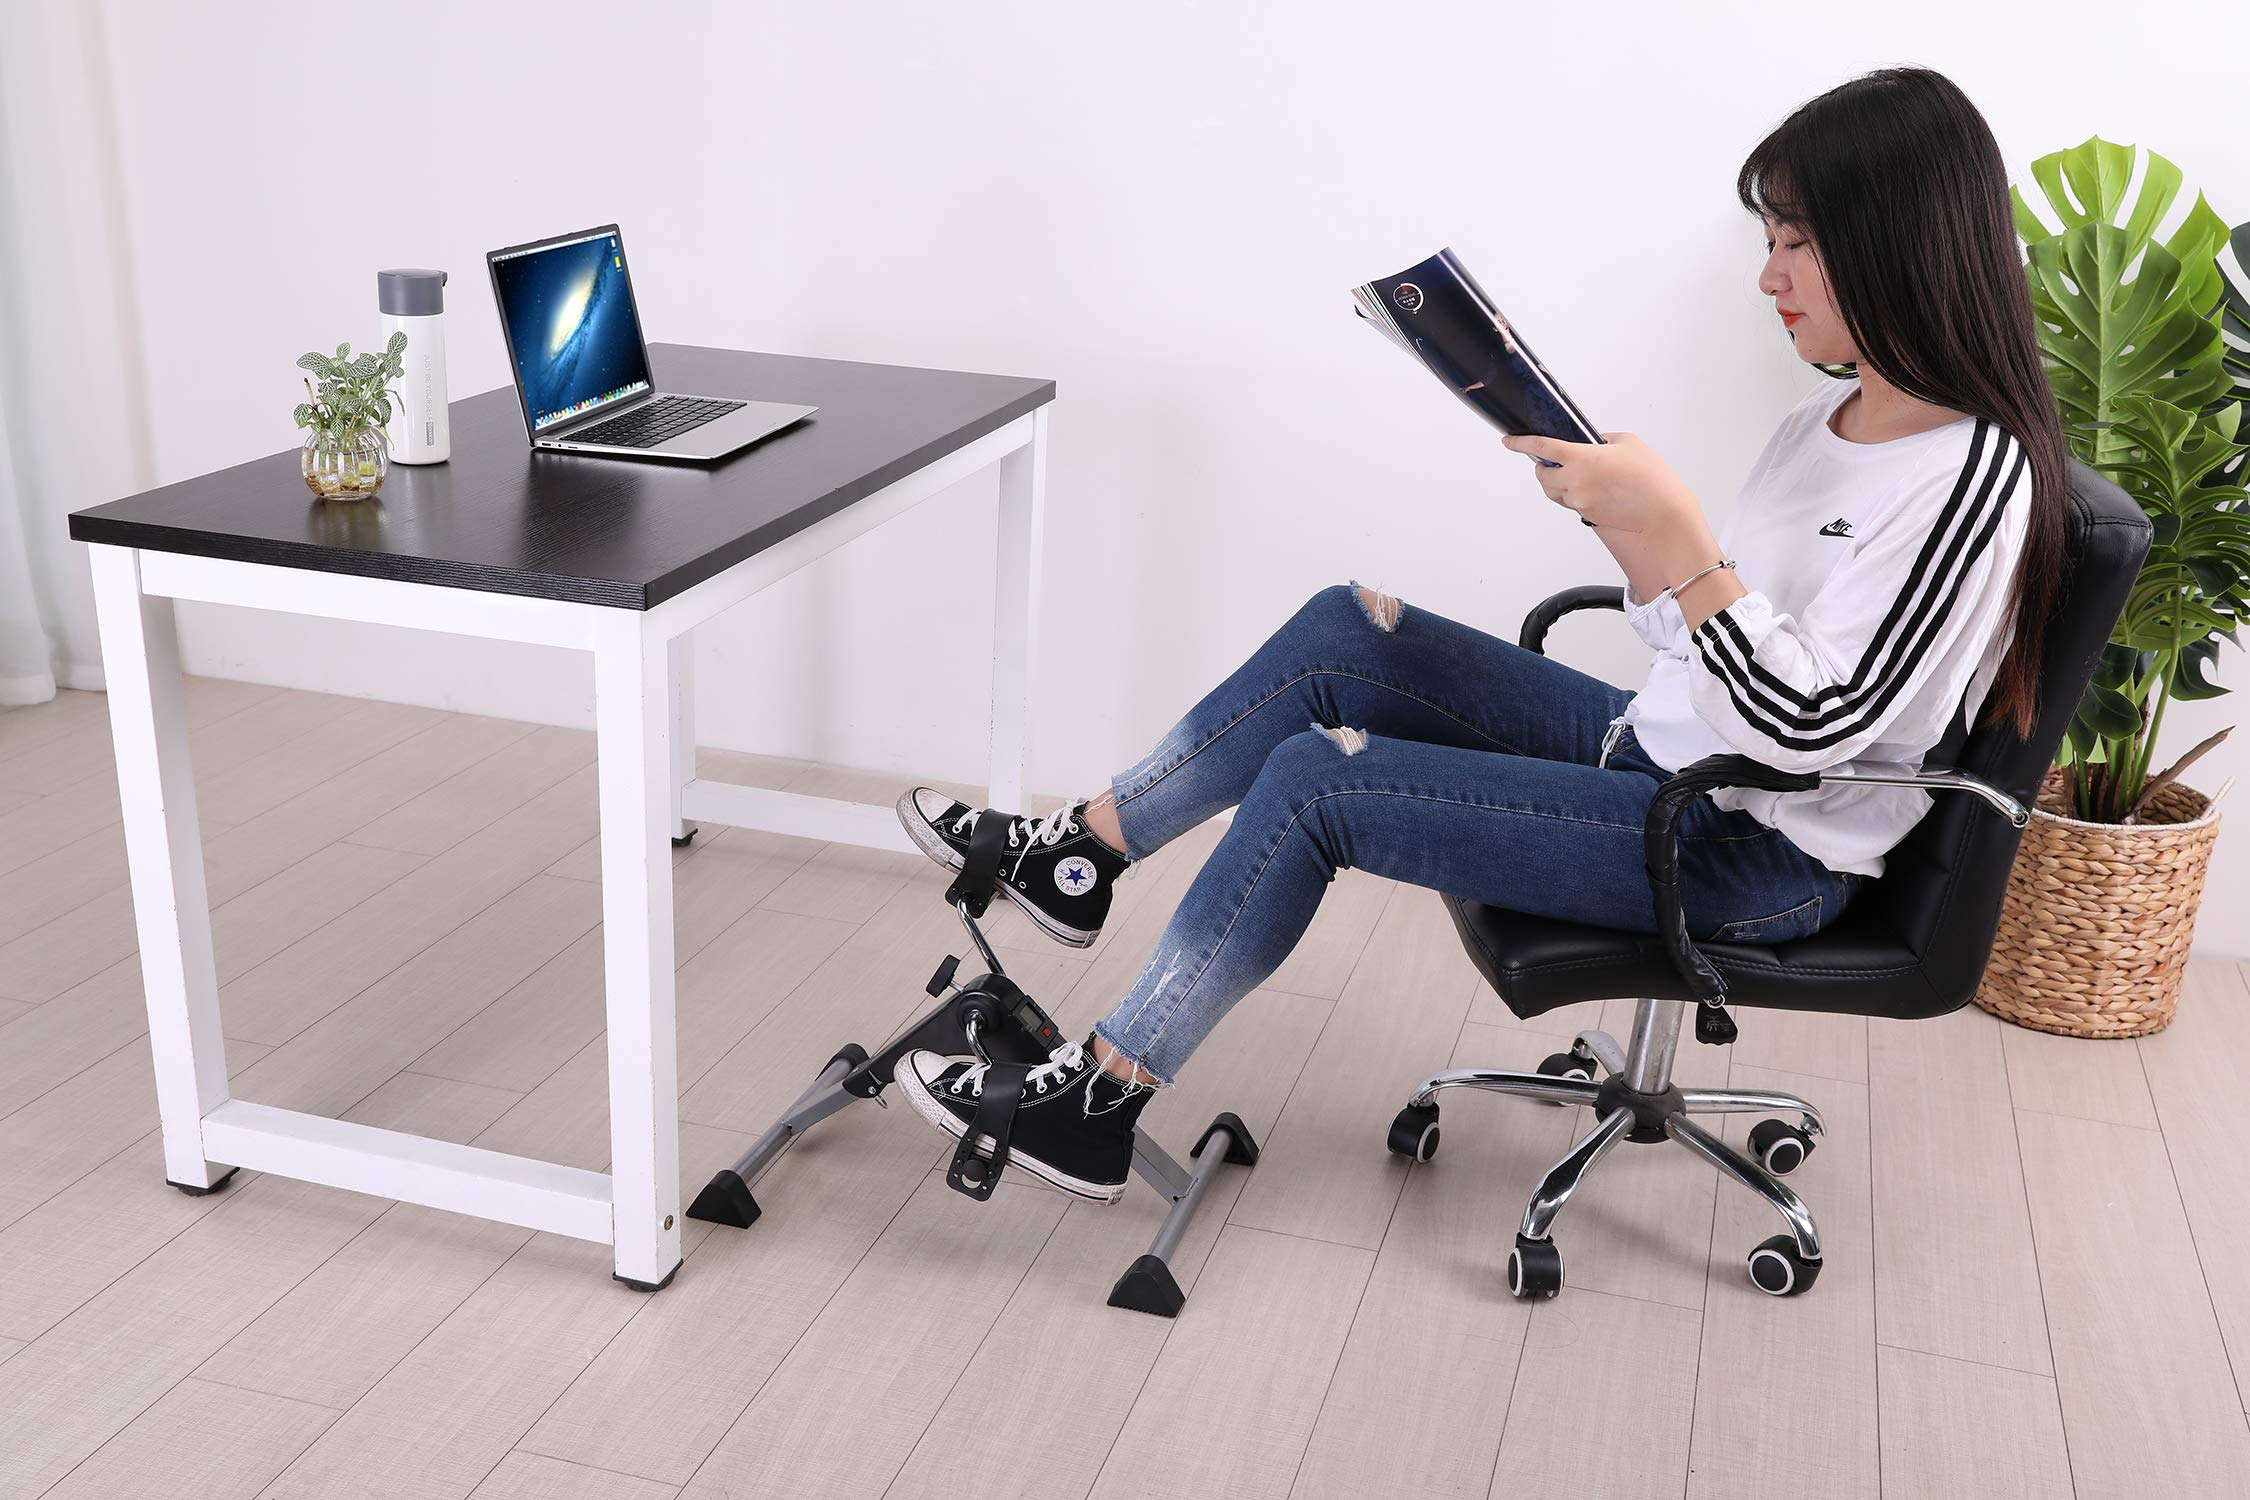 TODO Pedal Exerciser Foot Peddler Desk Bike Foldable with LCD Monitor by TODO (Image #5)